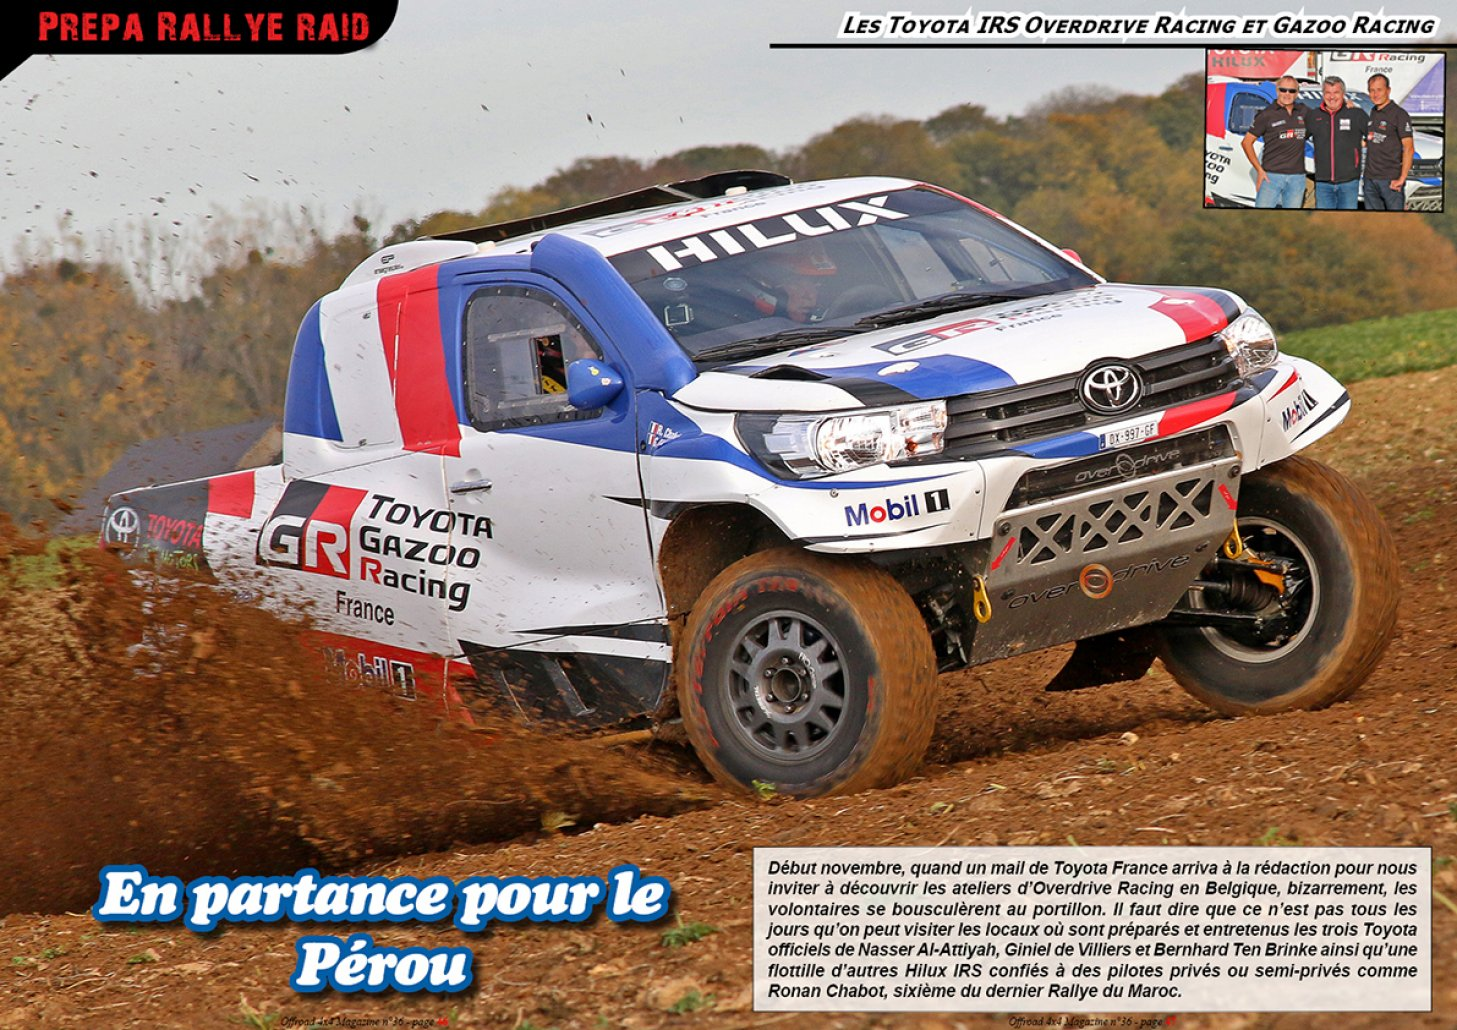 Les Toyota Hilux IRS Overdrive Racing